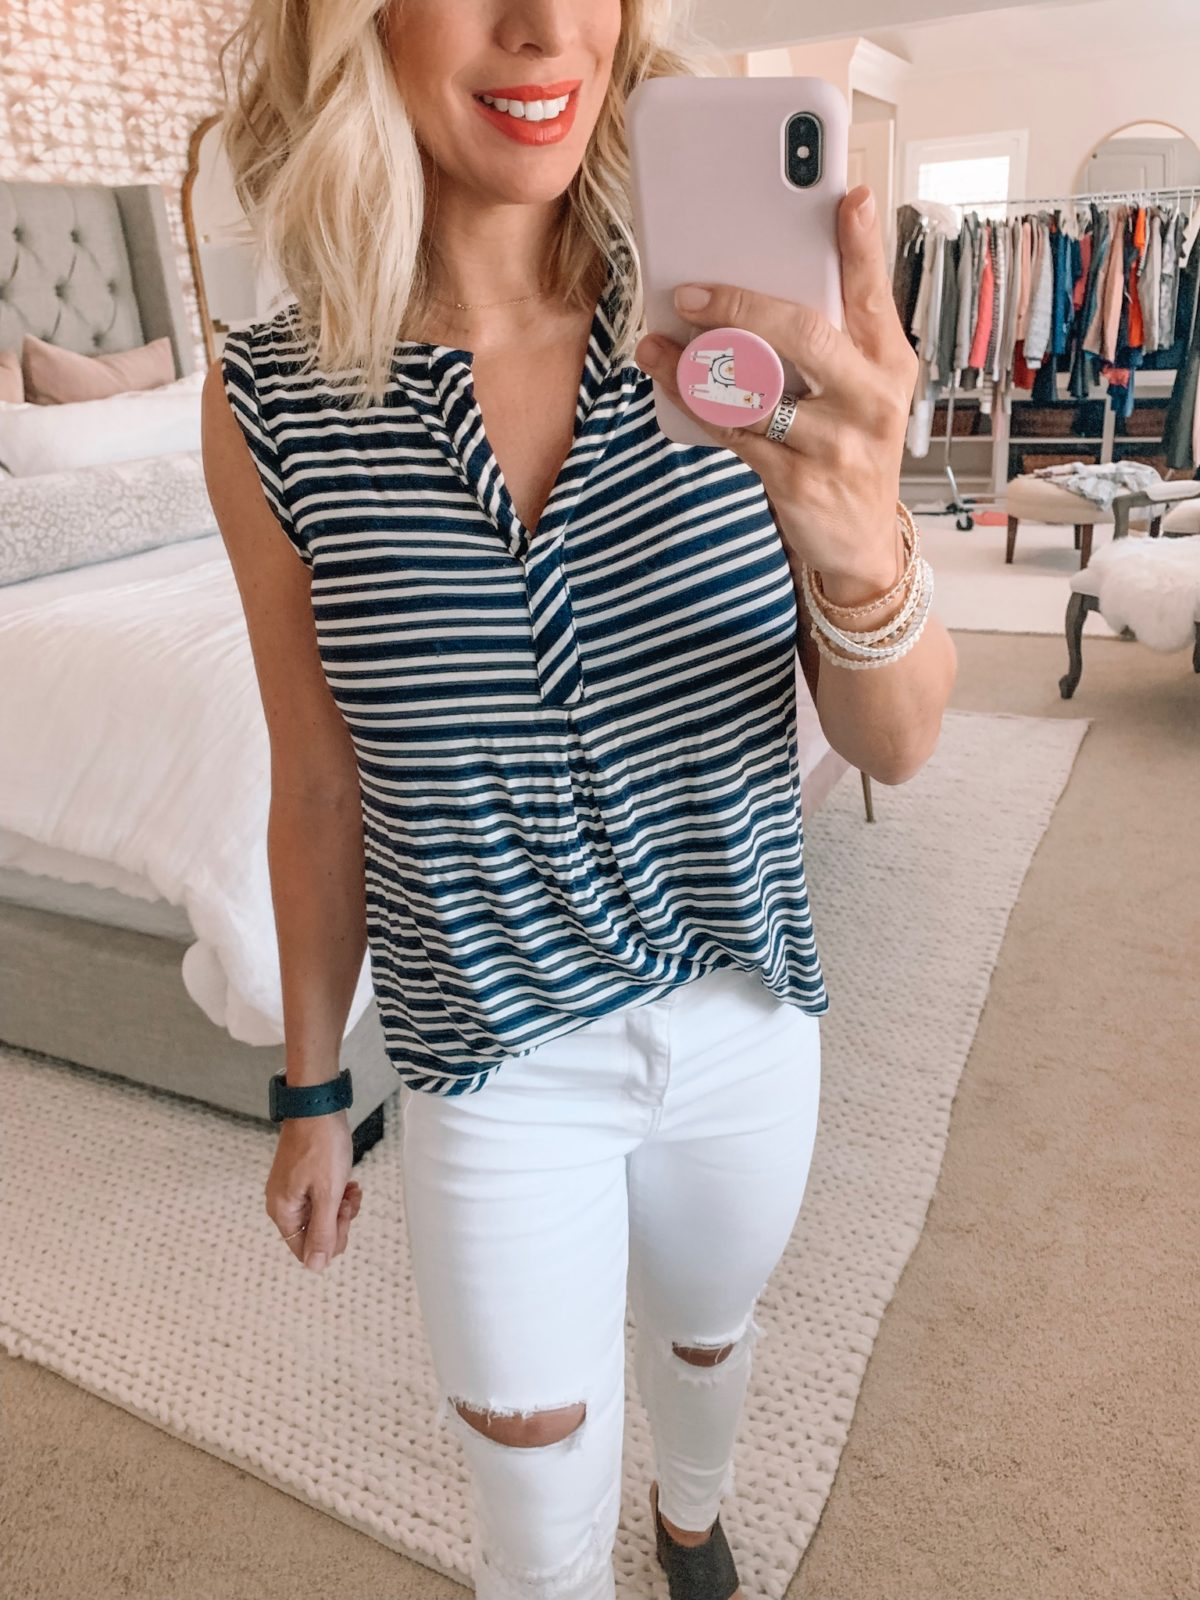 Dressing Room - Stripe tank with white jeans